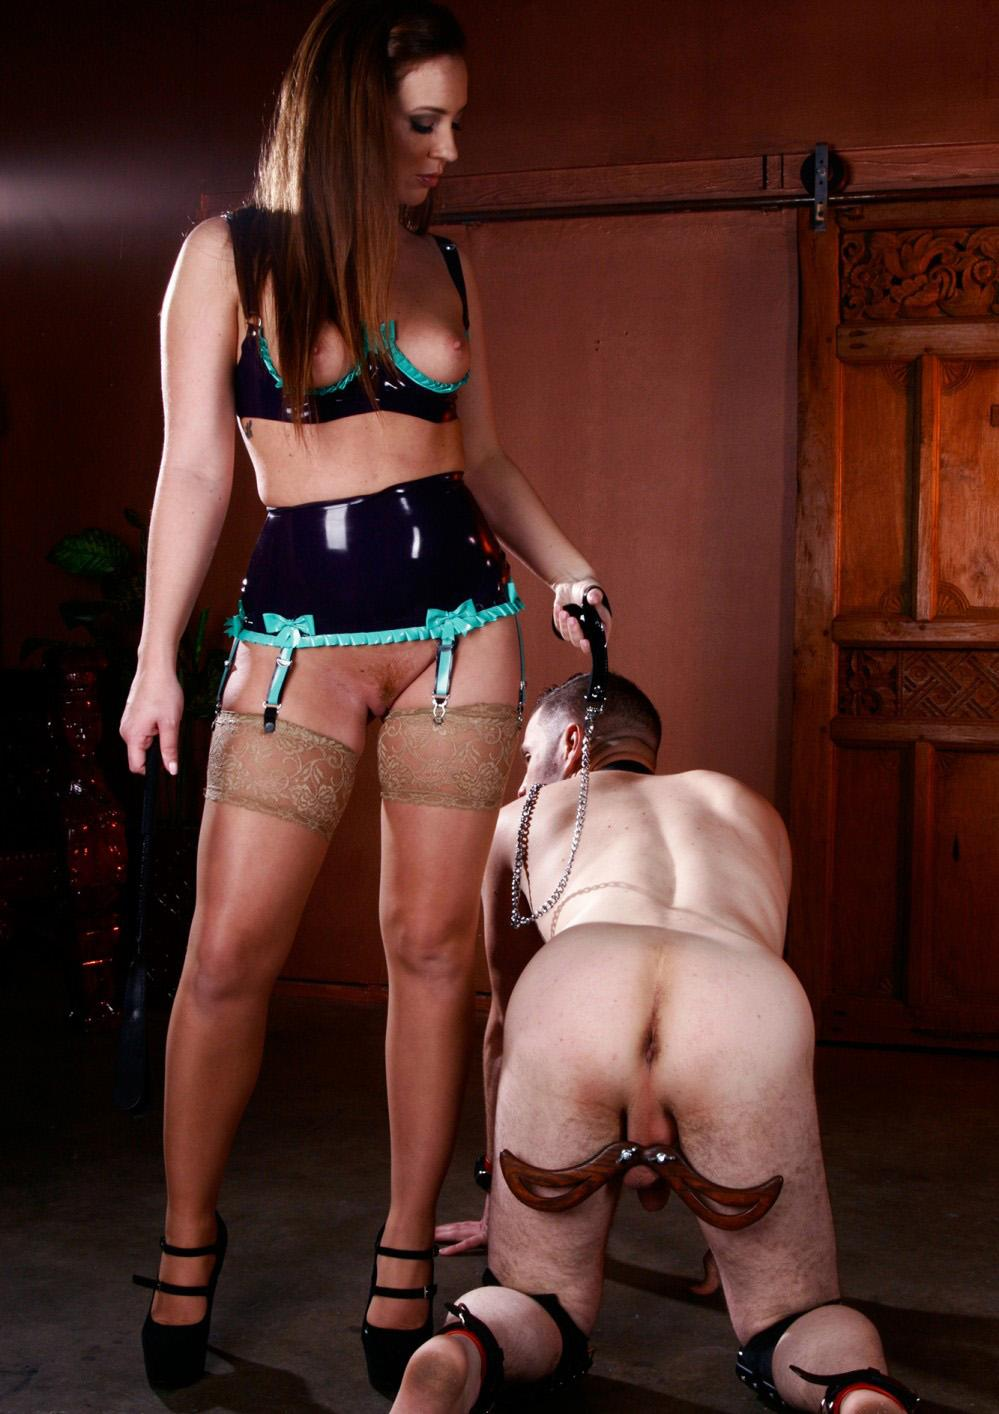 best of Humbler slaves videos Femdom with